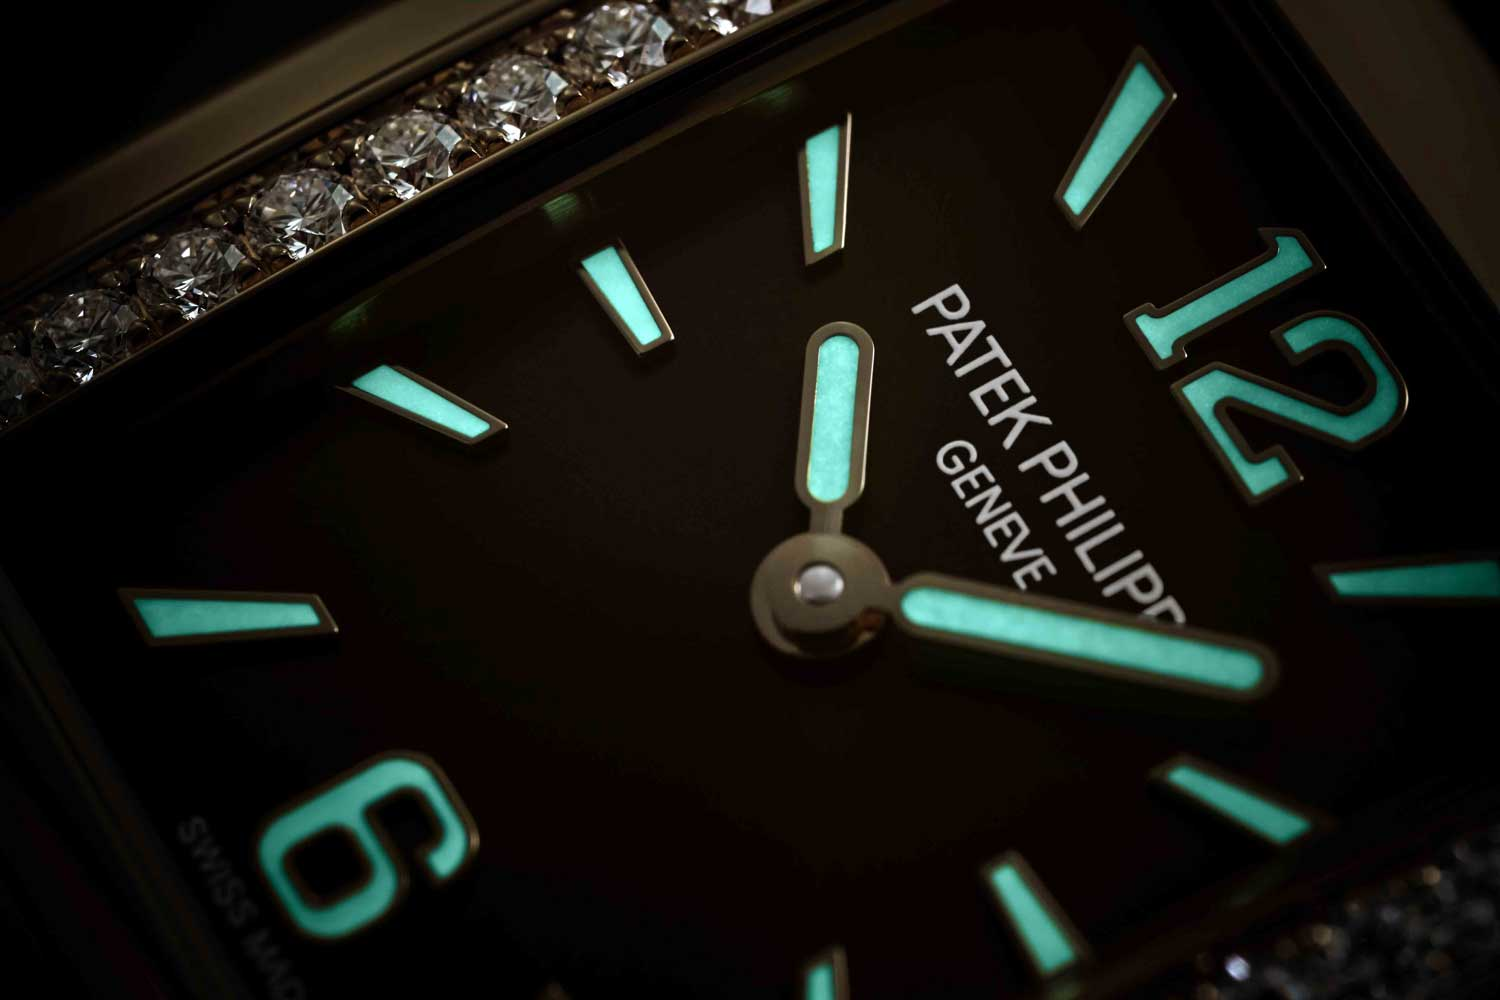 The indexes and hands on the watch are coated with Super-Luminova for low-light or night timekeeping.